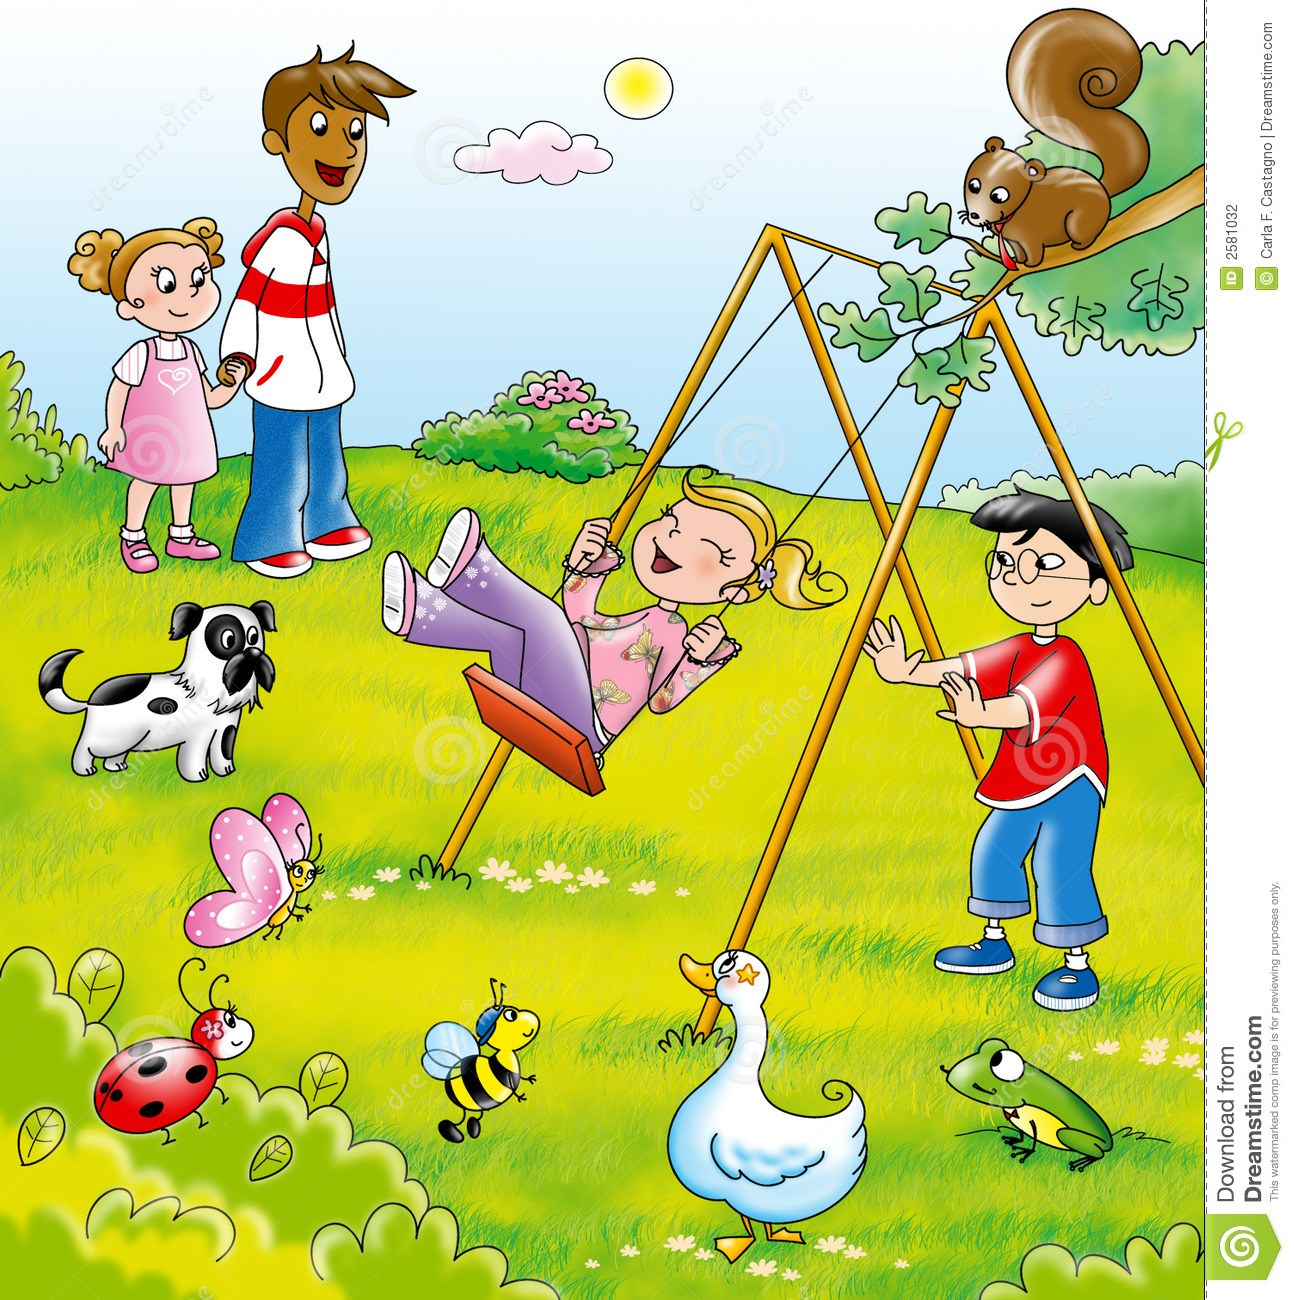 Kids at the park clipart clip free Kids at the park clipart 5 » Clipart Portal clip free